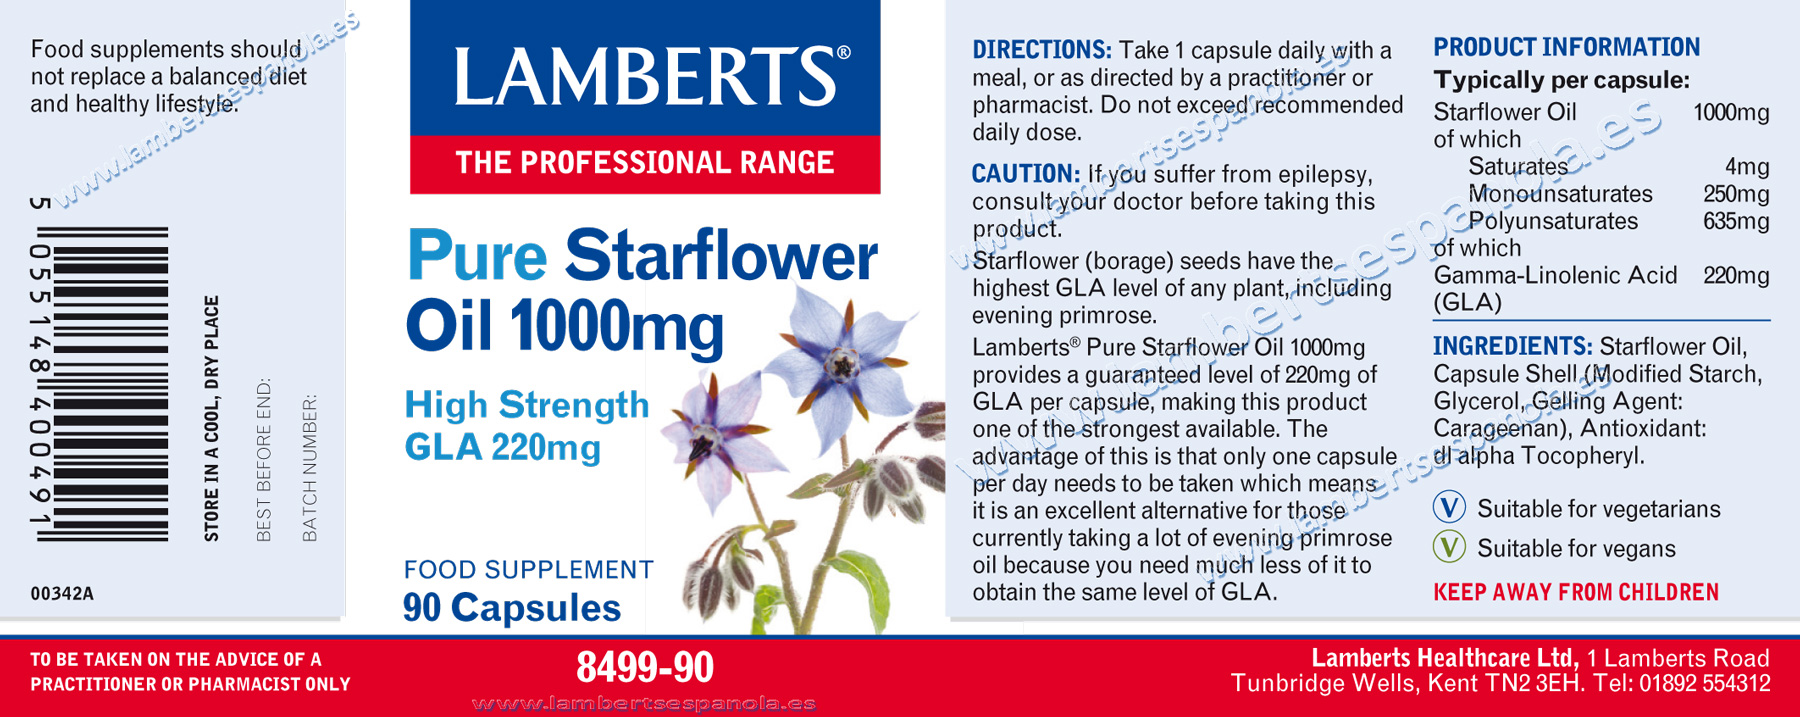 Starflower Oil properties. Lamberts